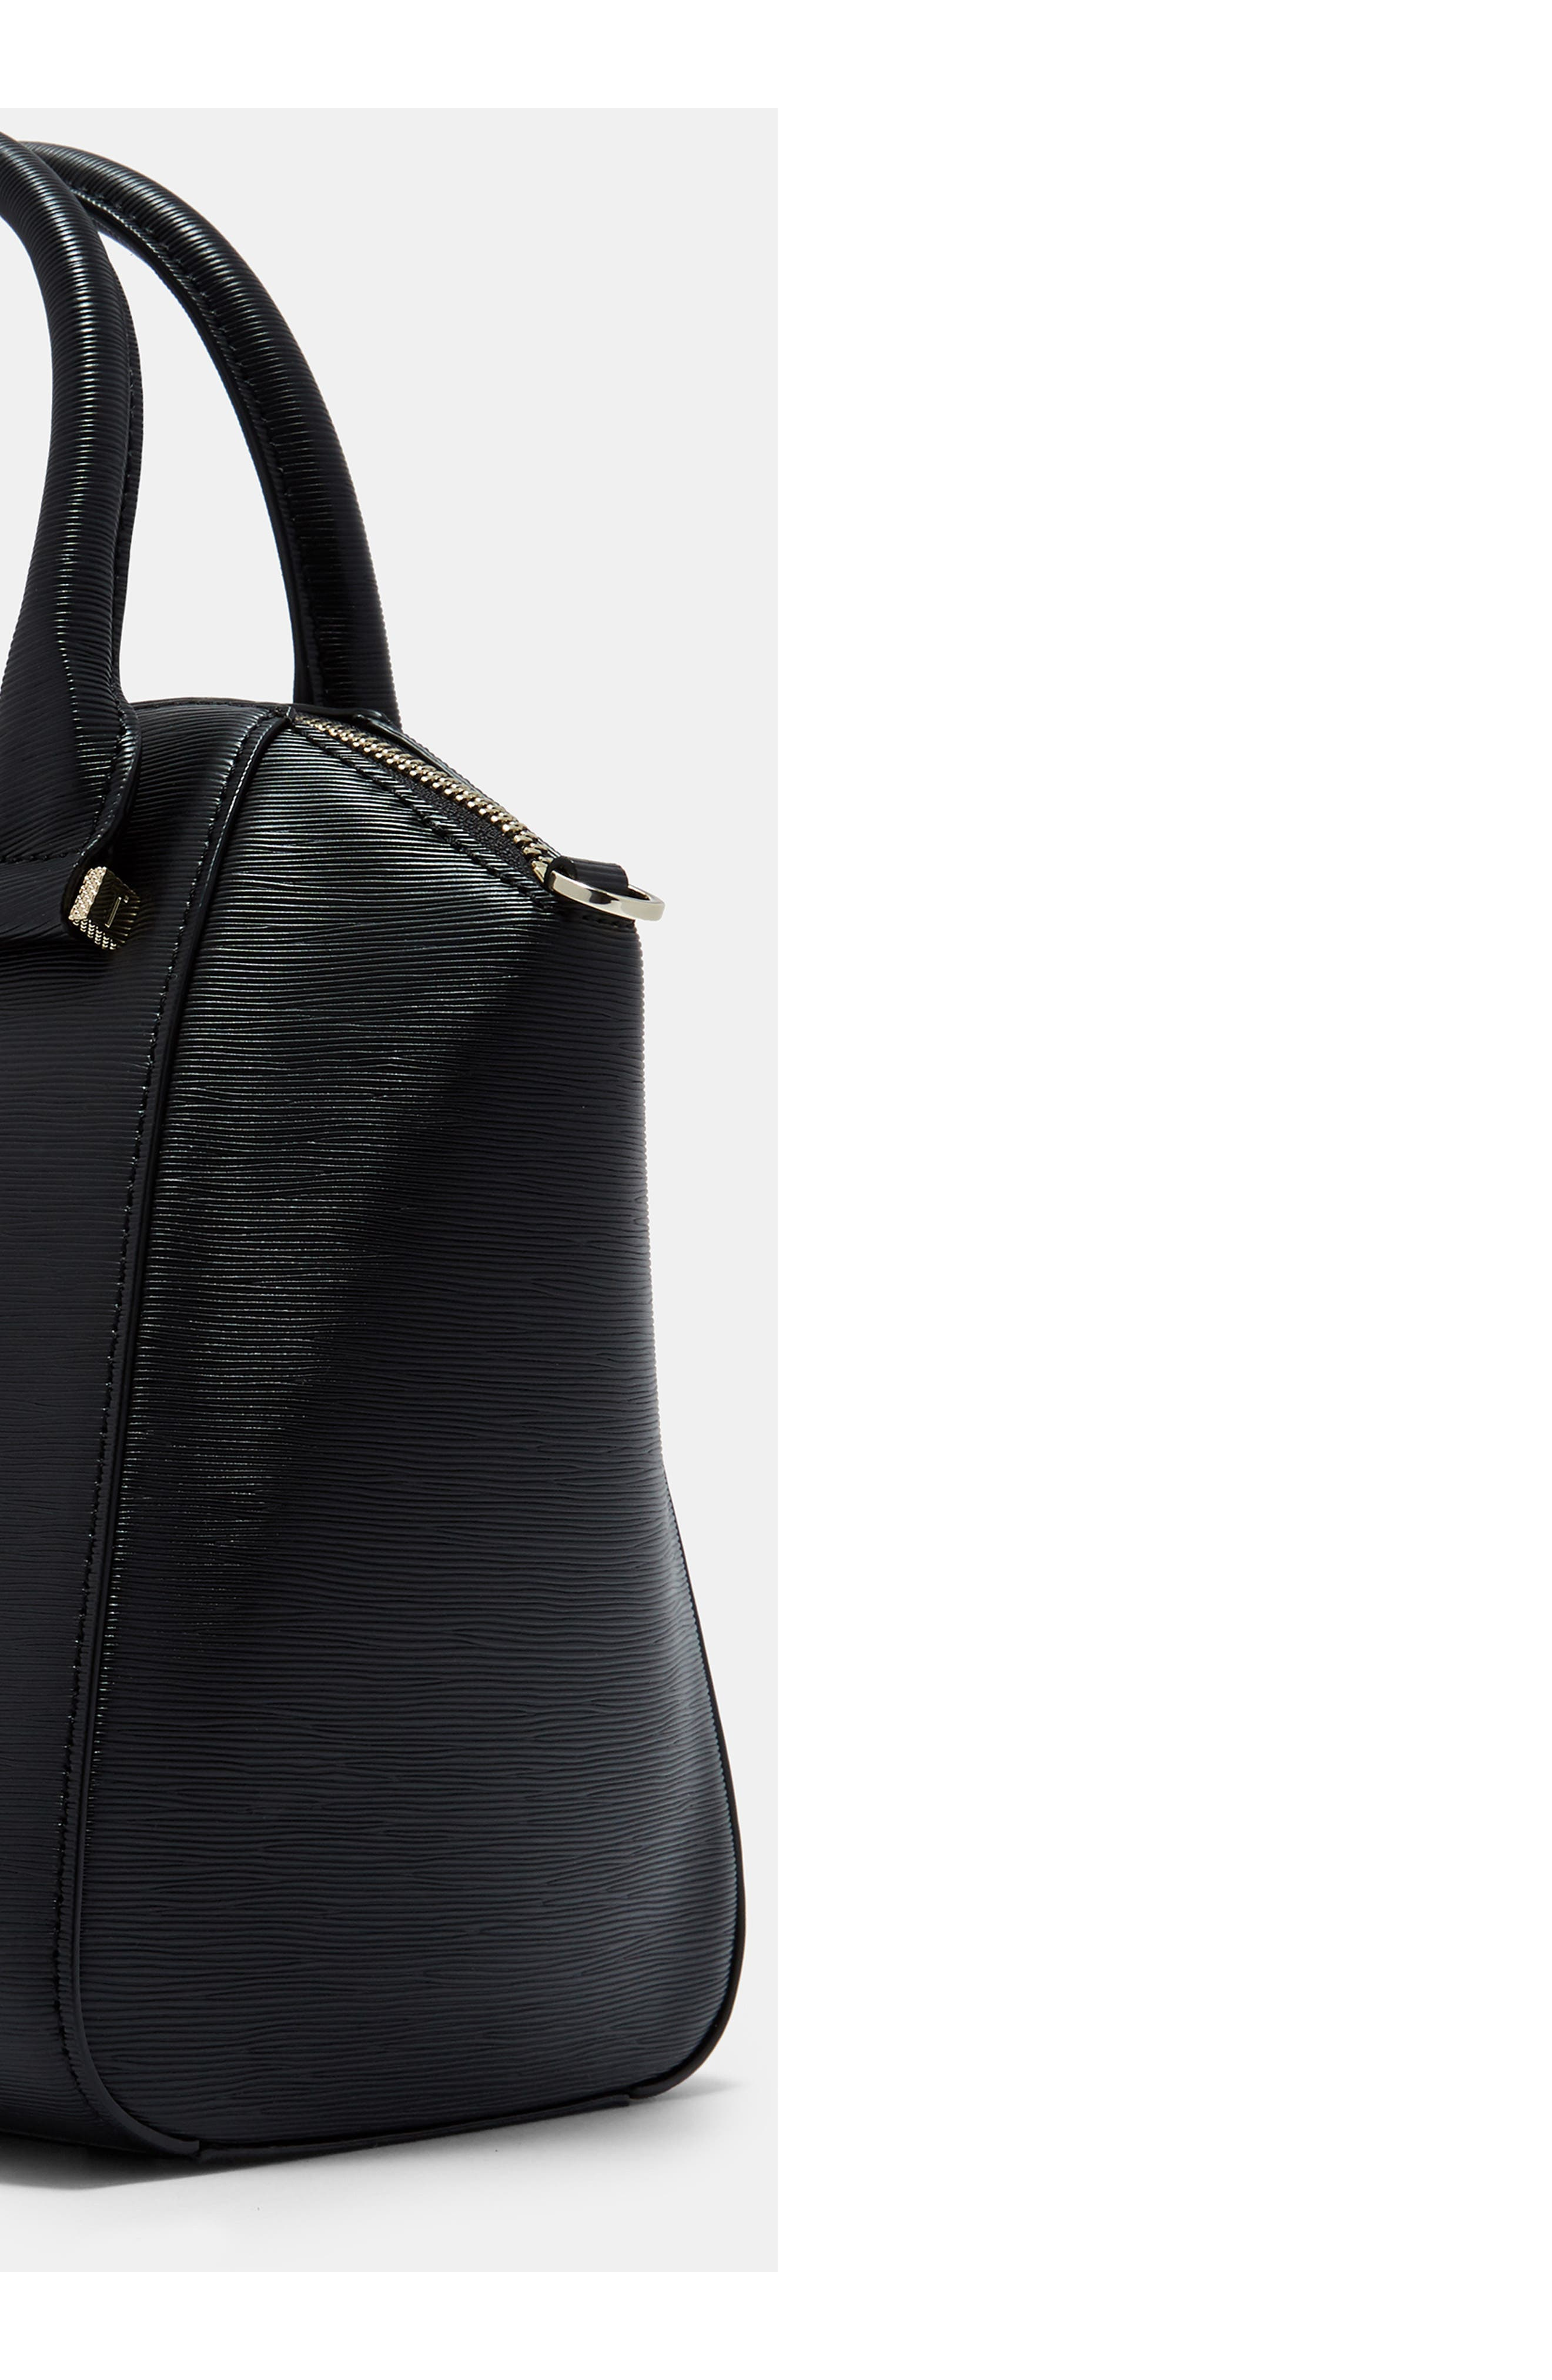 TED BAKER LONDON, Bow Tote, Alternate thumbnail 10, color, 001